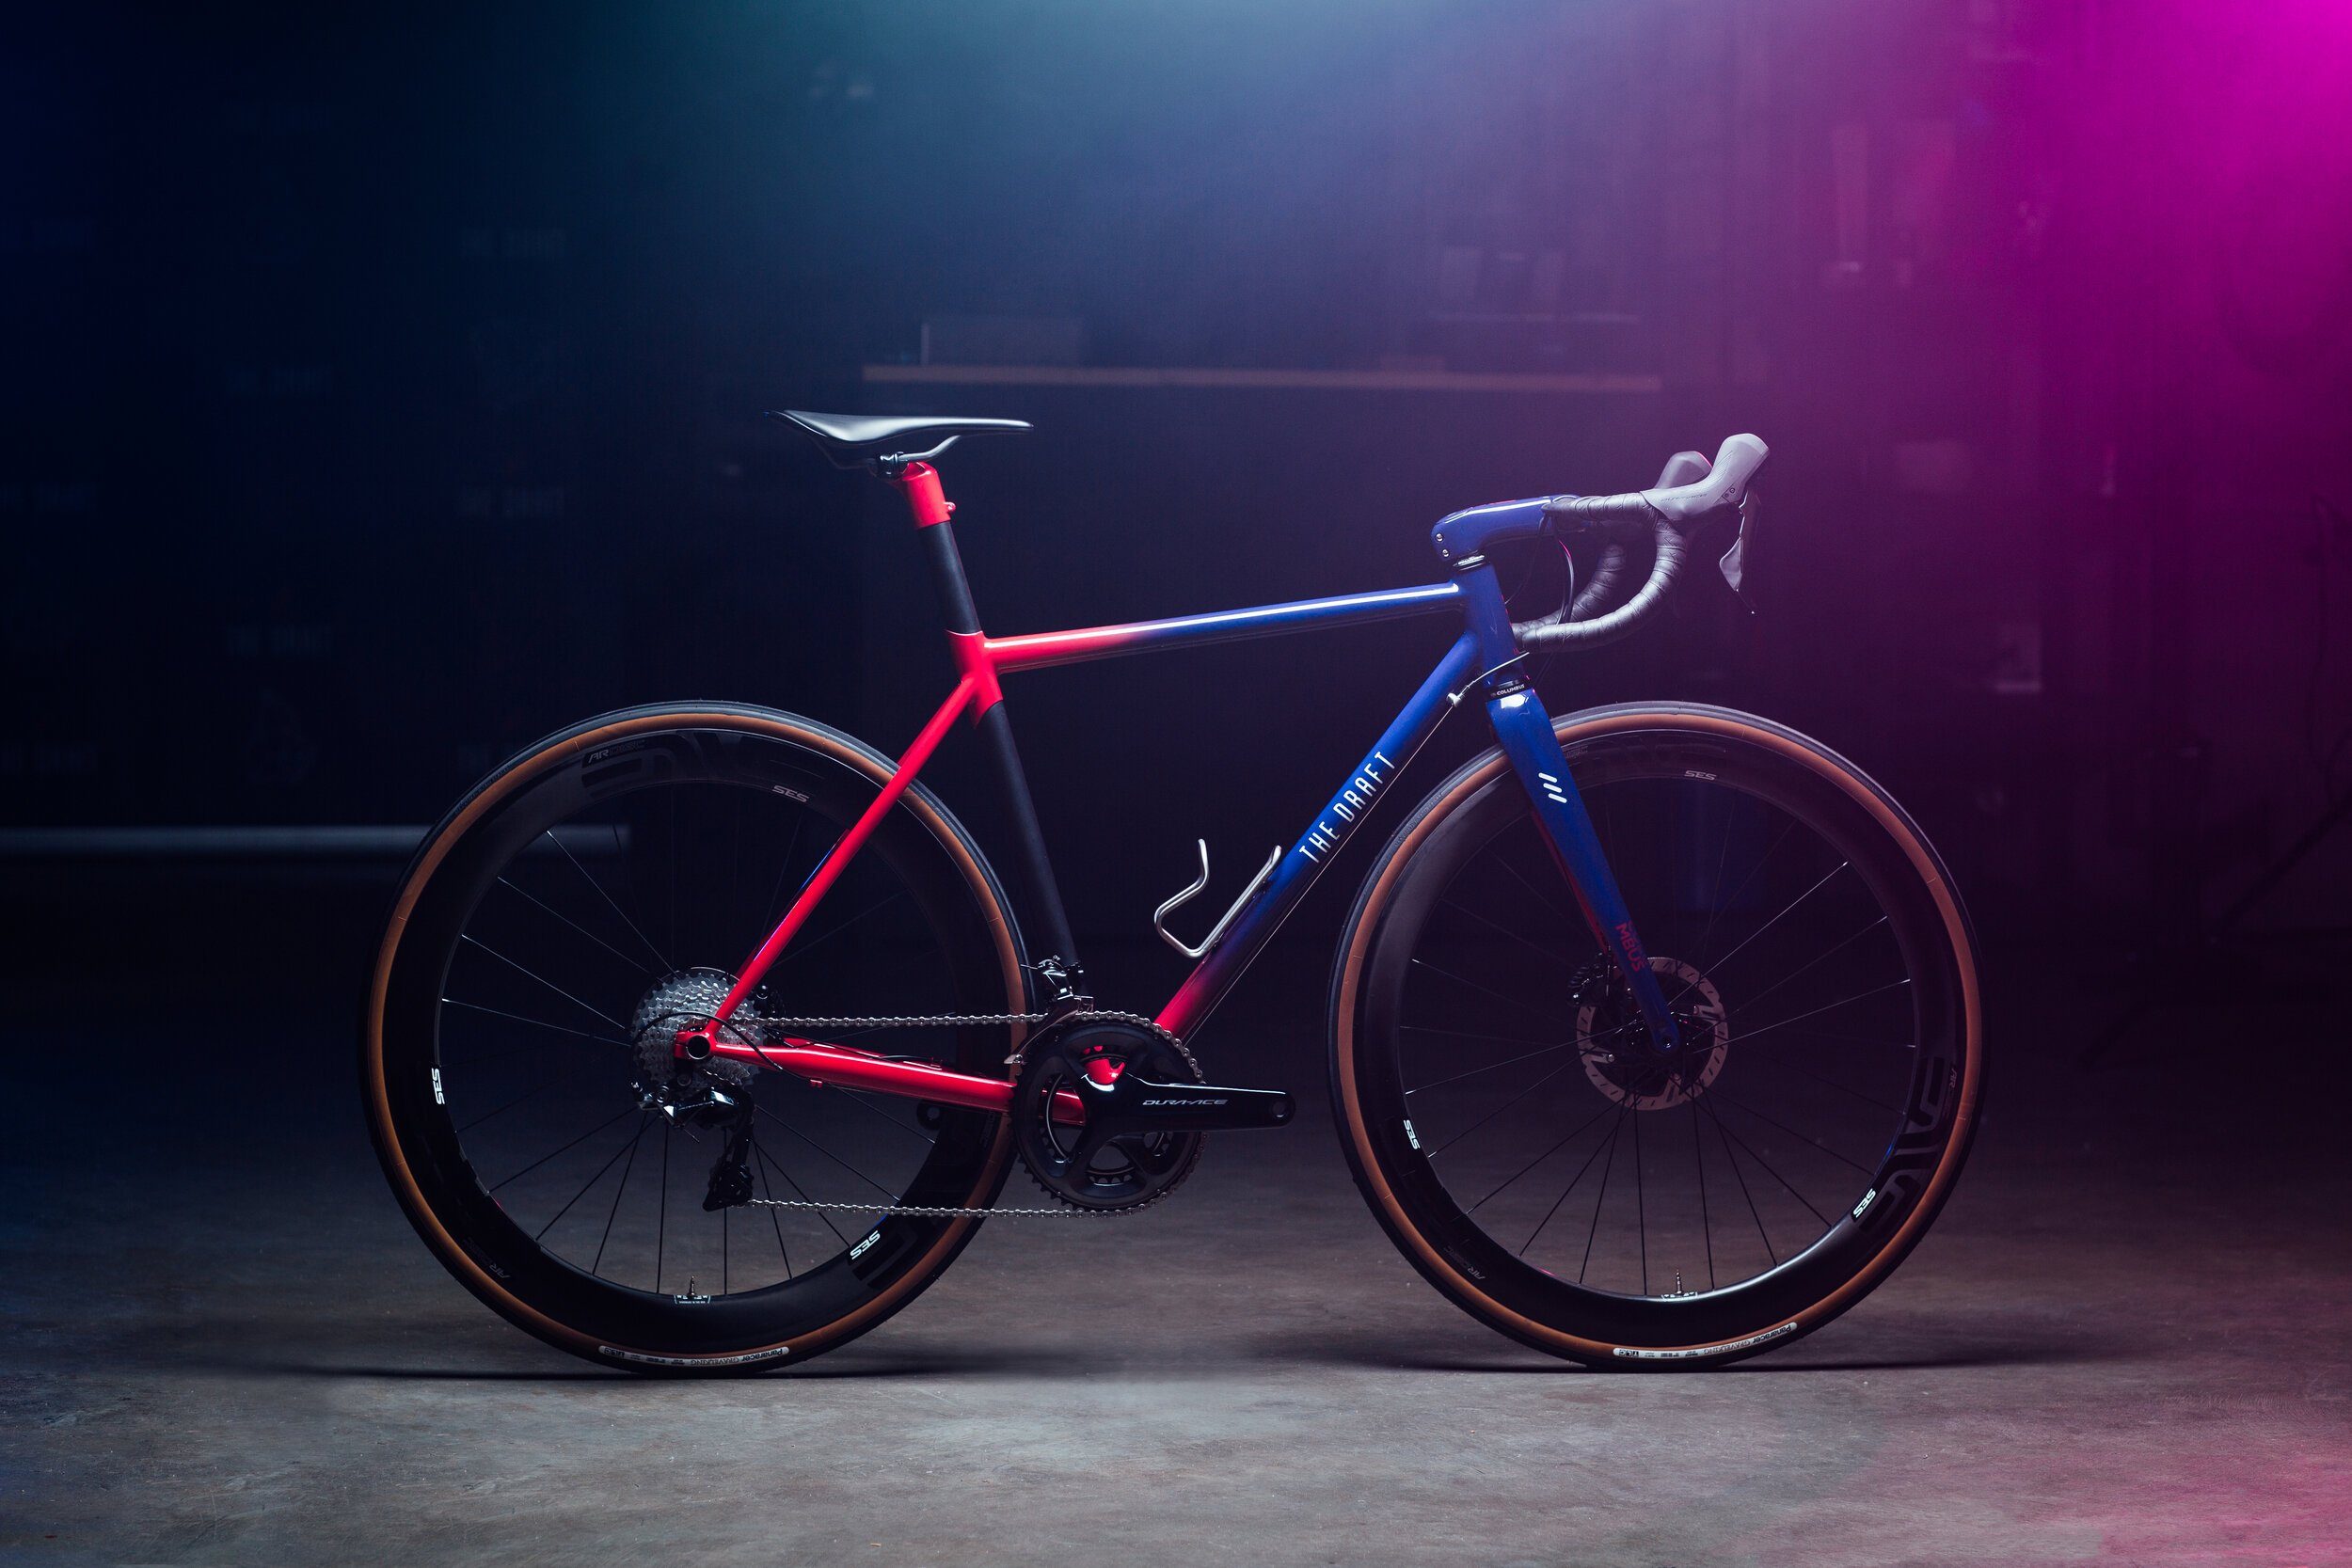 The Draft Hypatia with carbon wheels